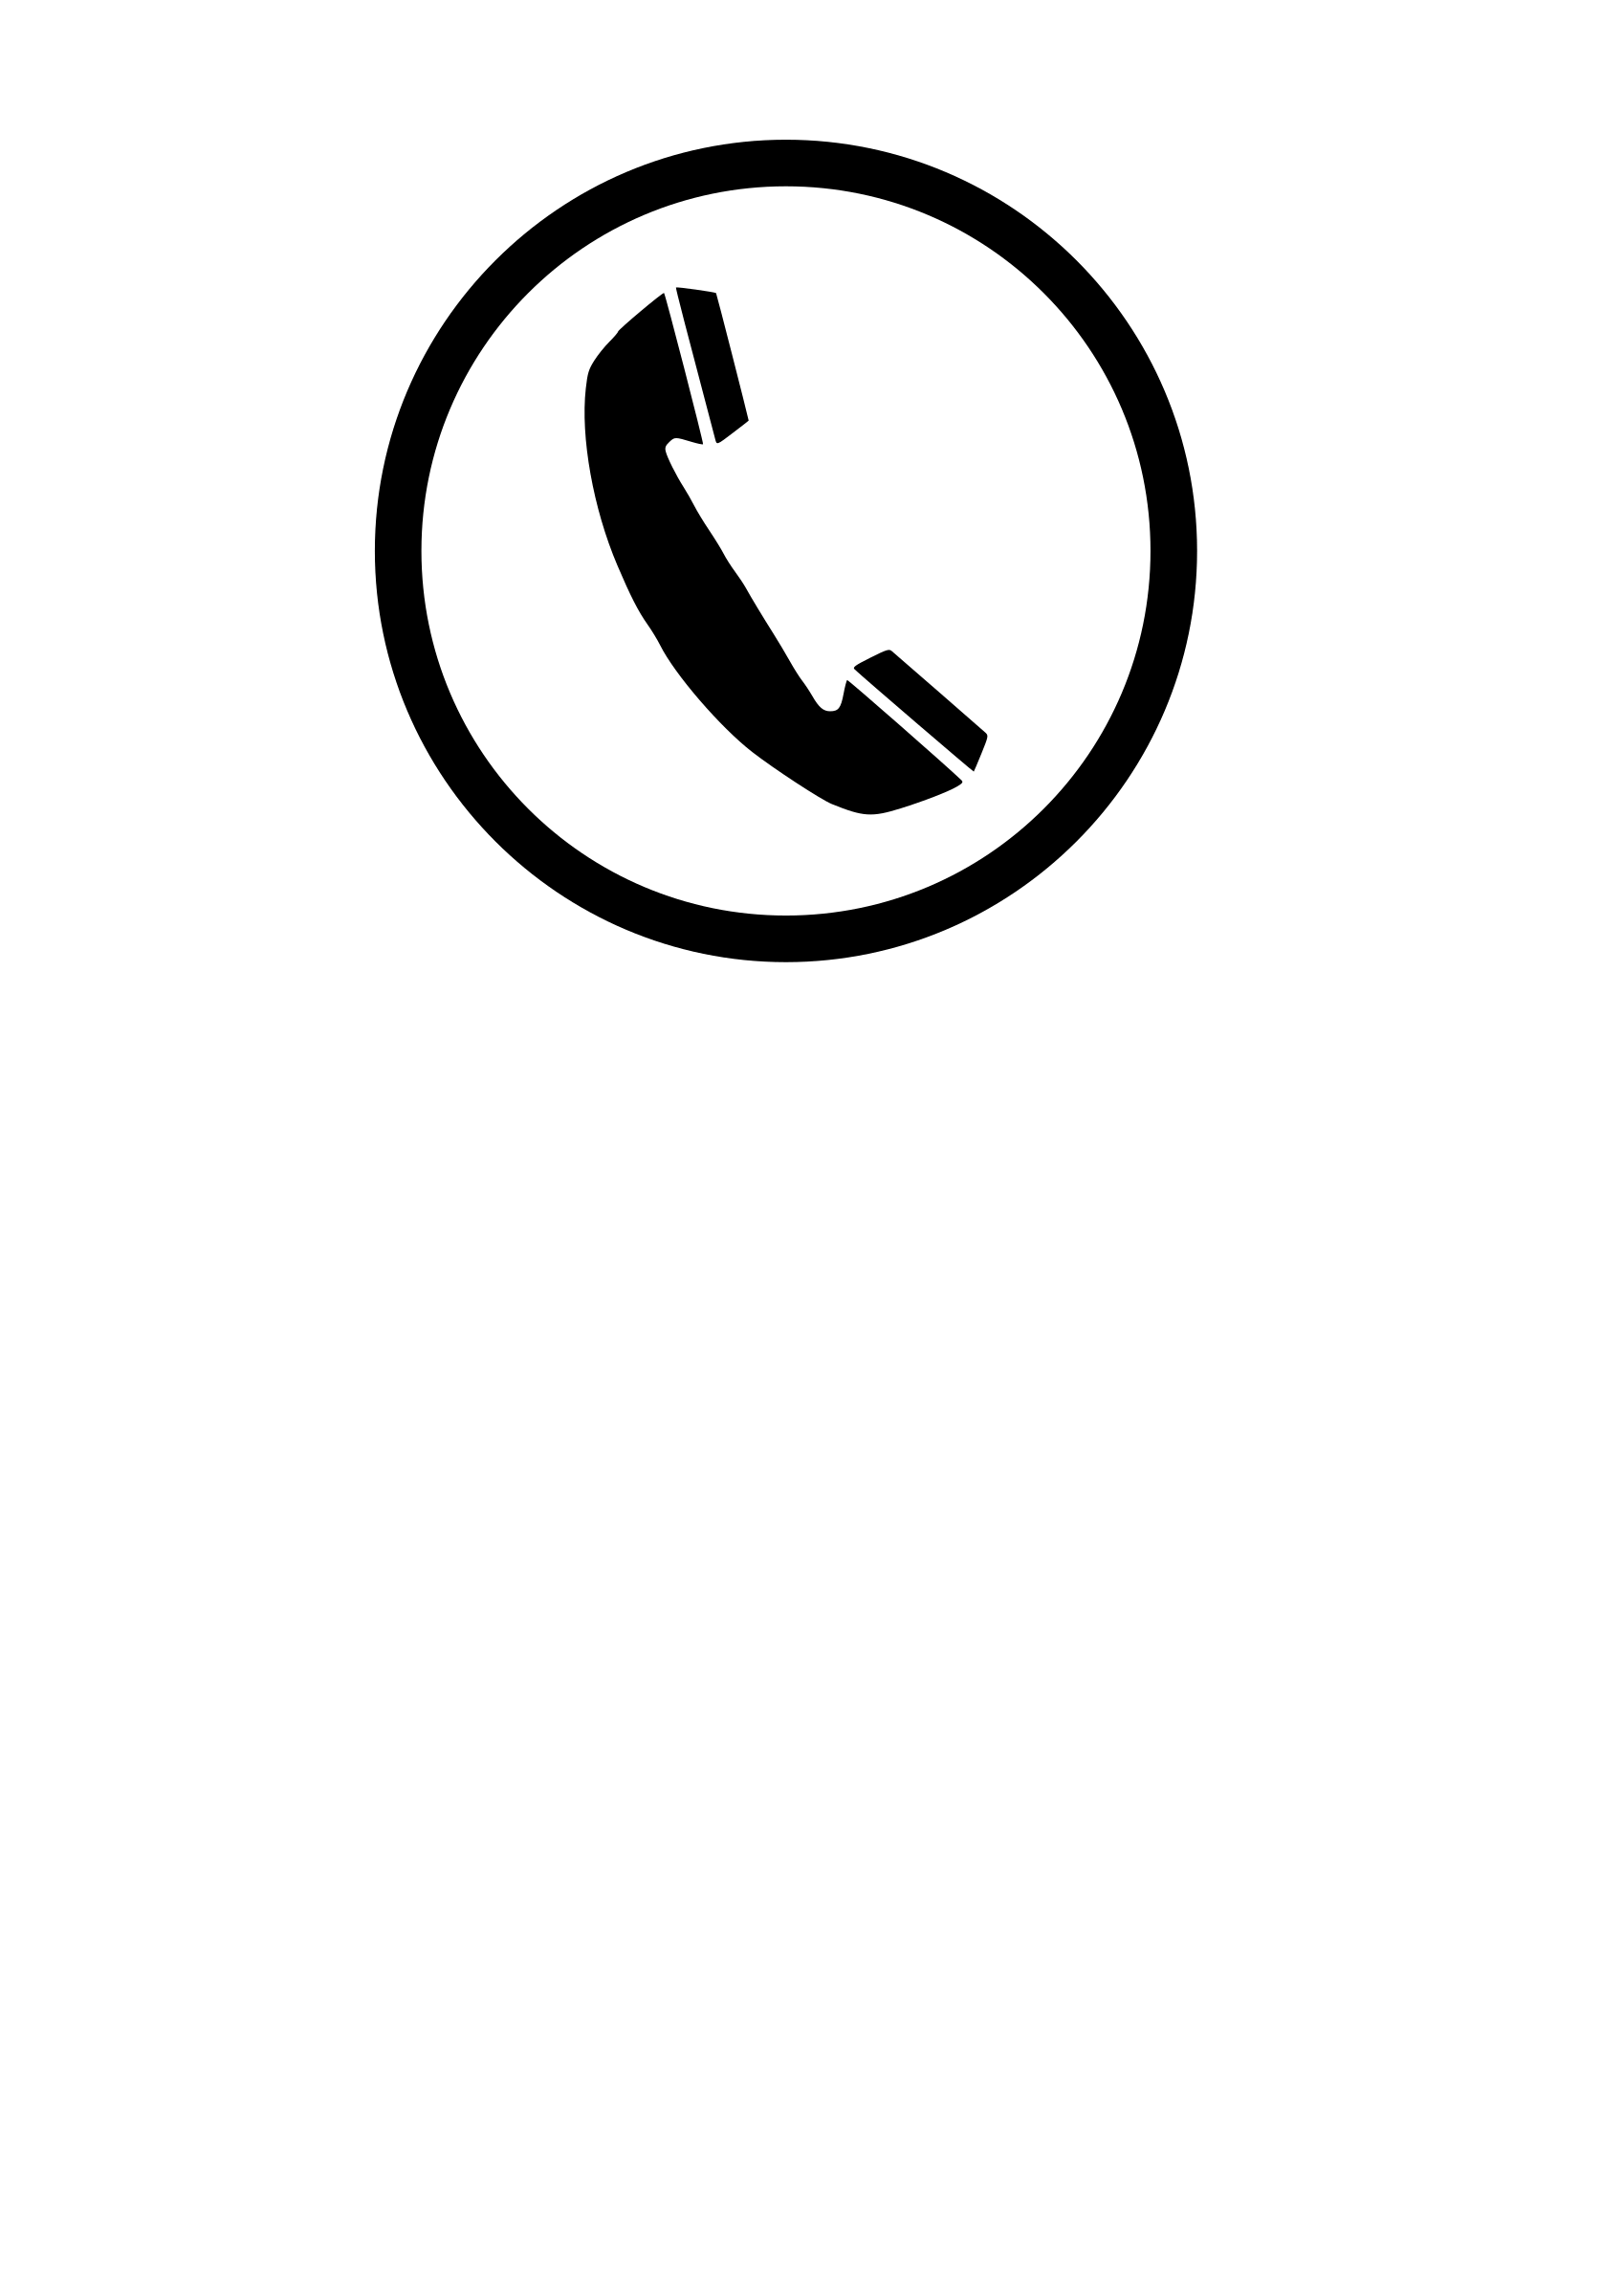 Clipart phone small, Clipart phone small Transparent FREE.